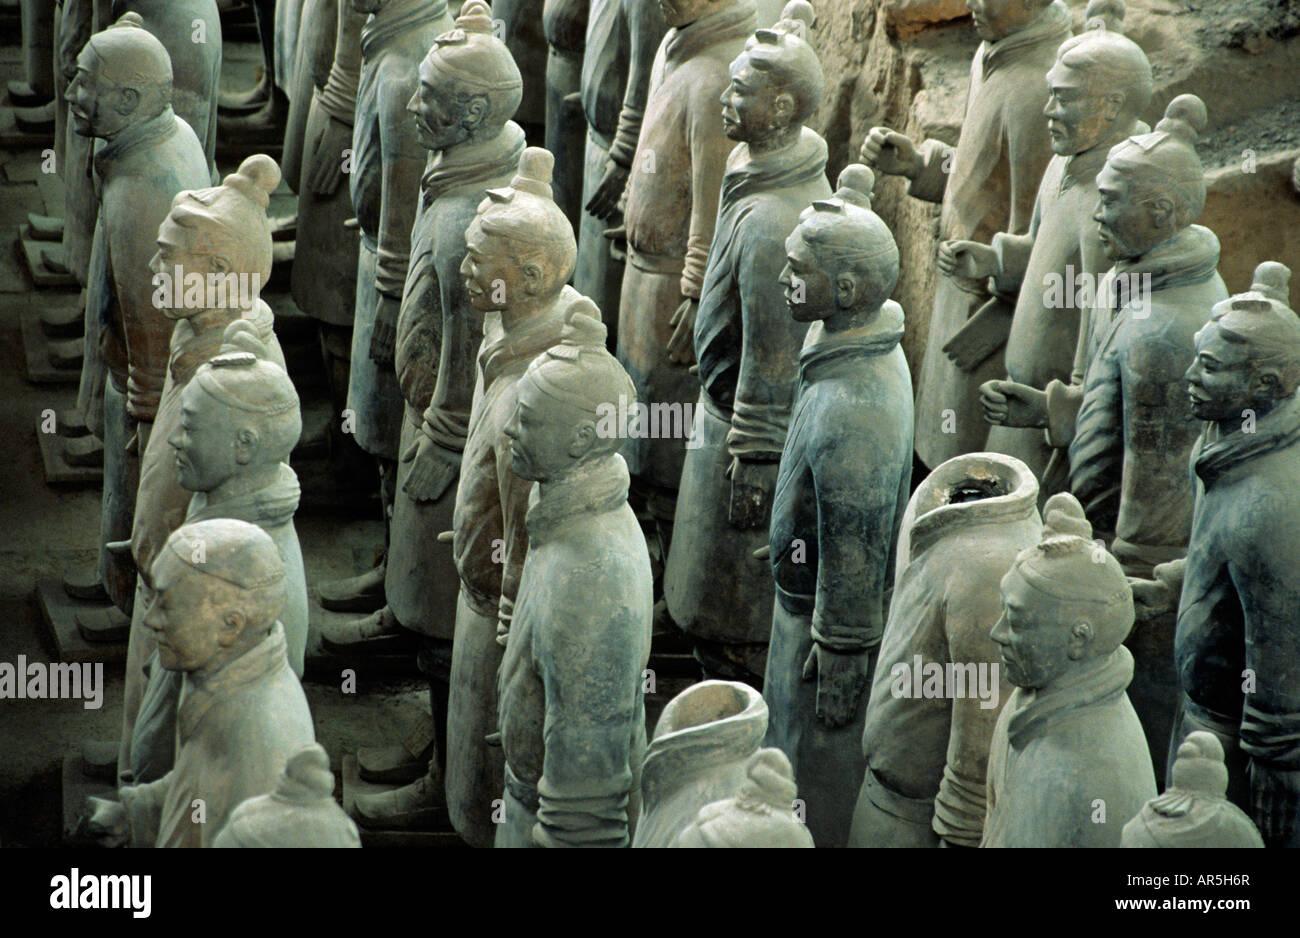 Terracotta army - Stock Image